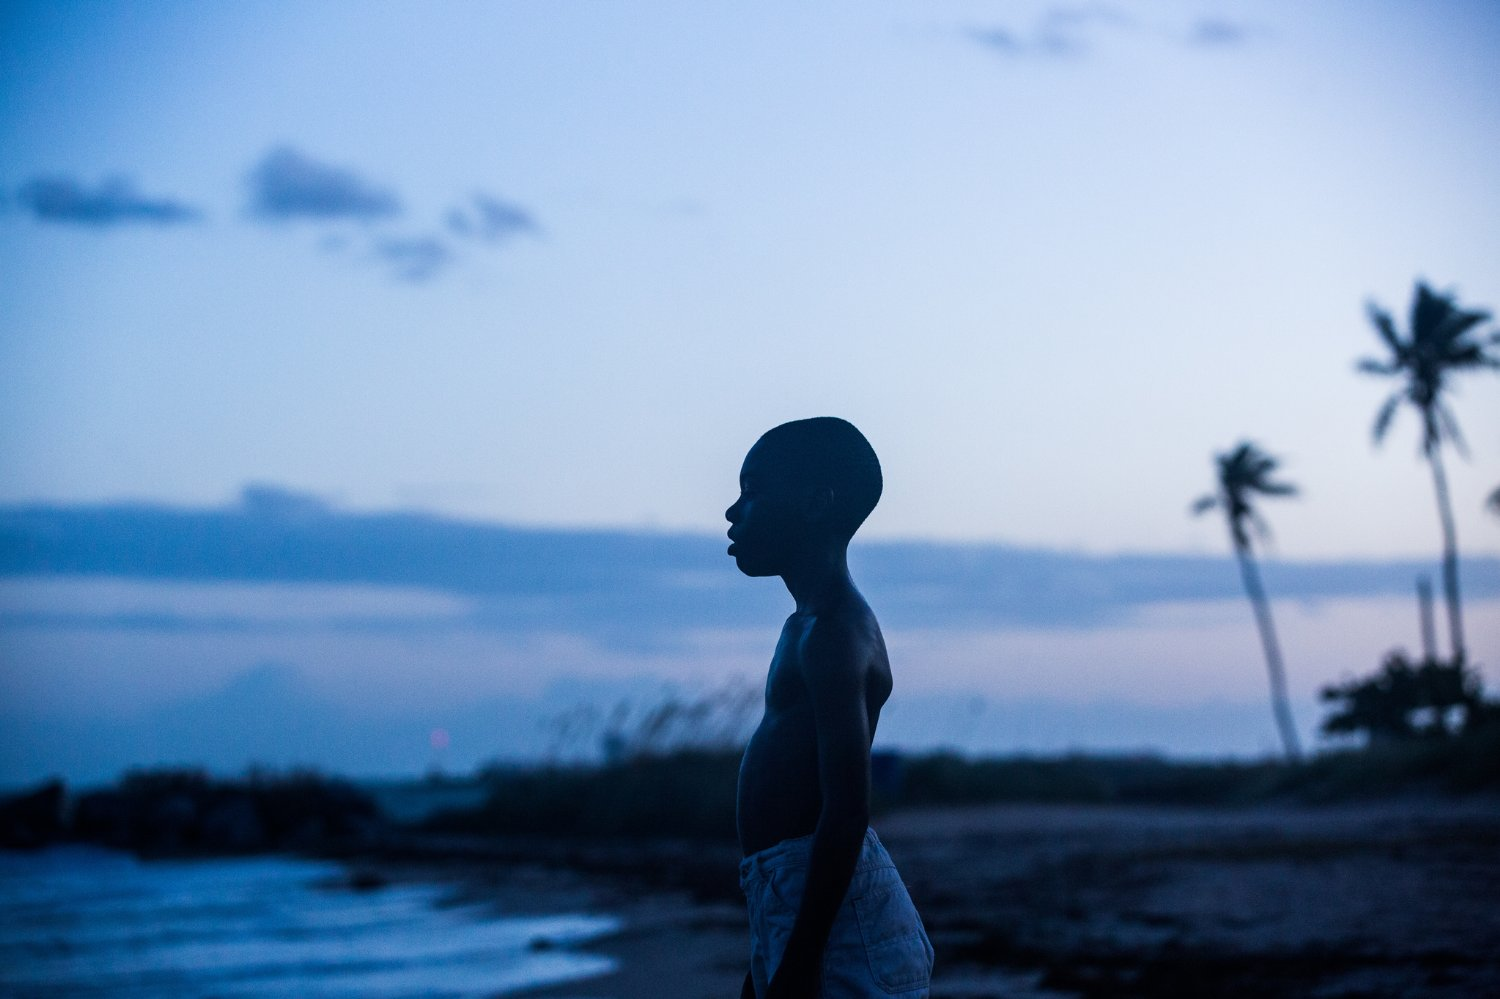 Moonlight still image